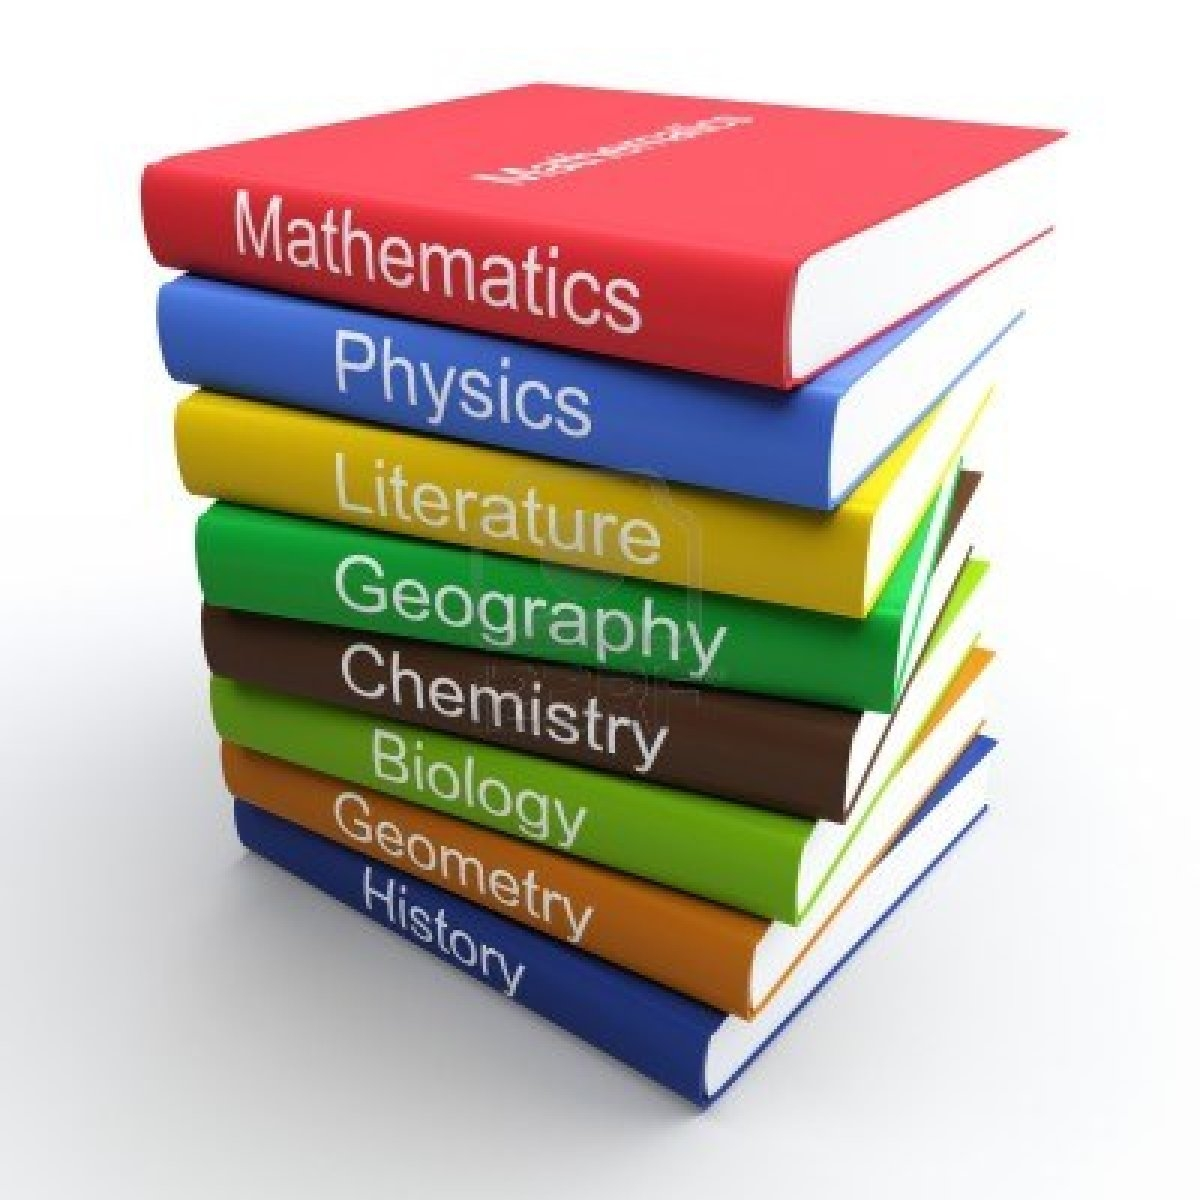 Download Stock Photos of school books images photography Royalty 1200x1200